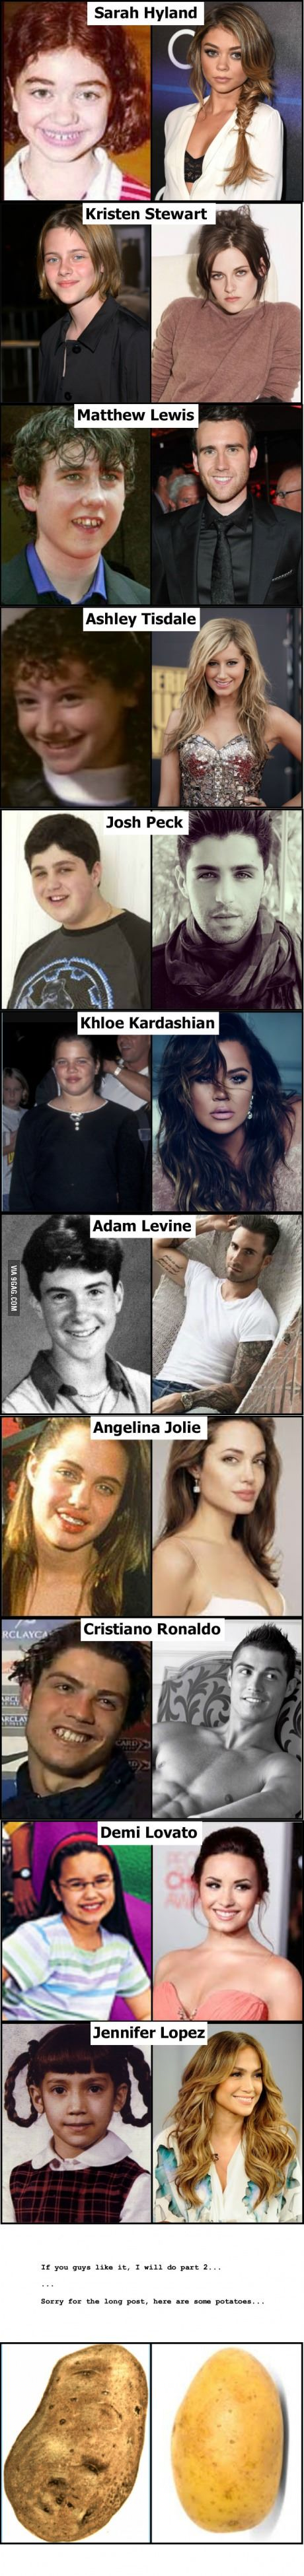 Celebrities then and now...: